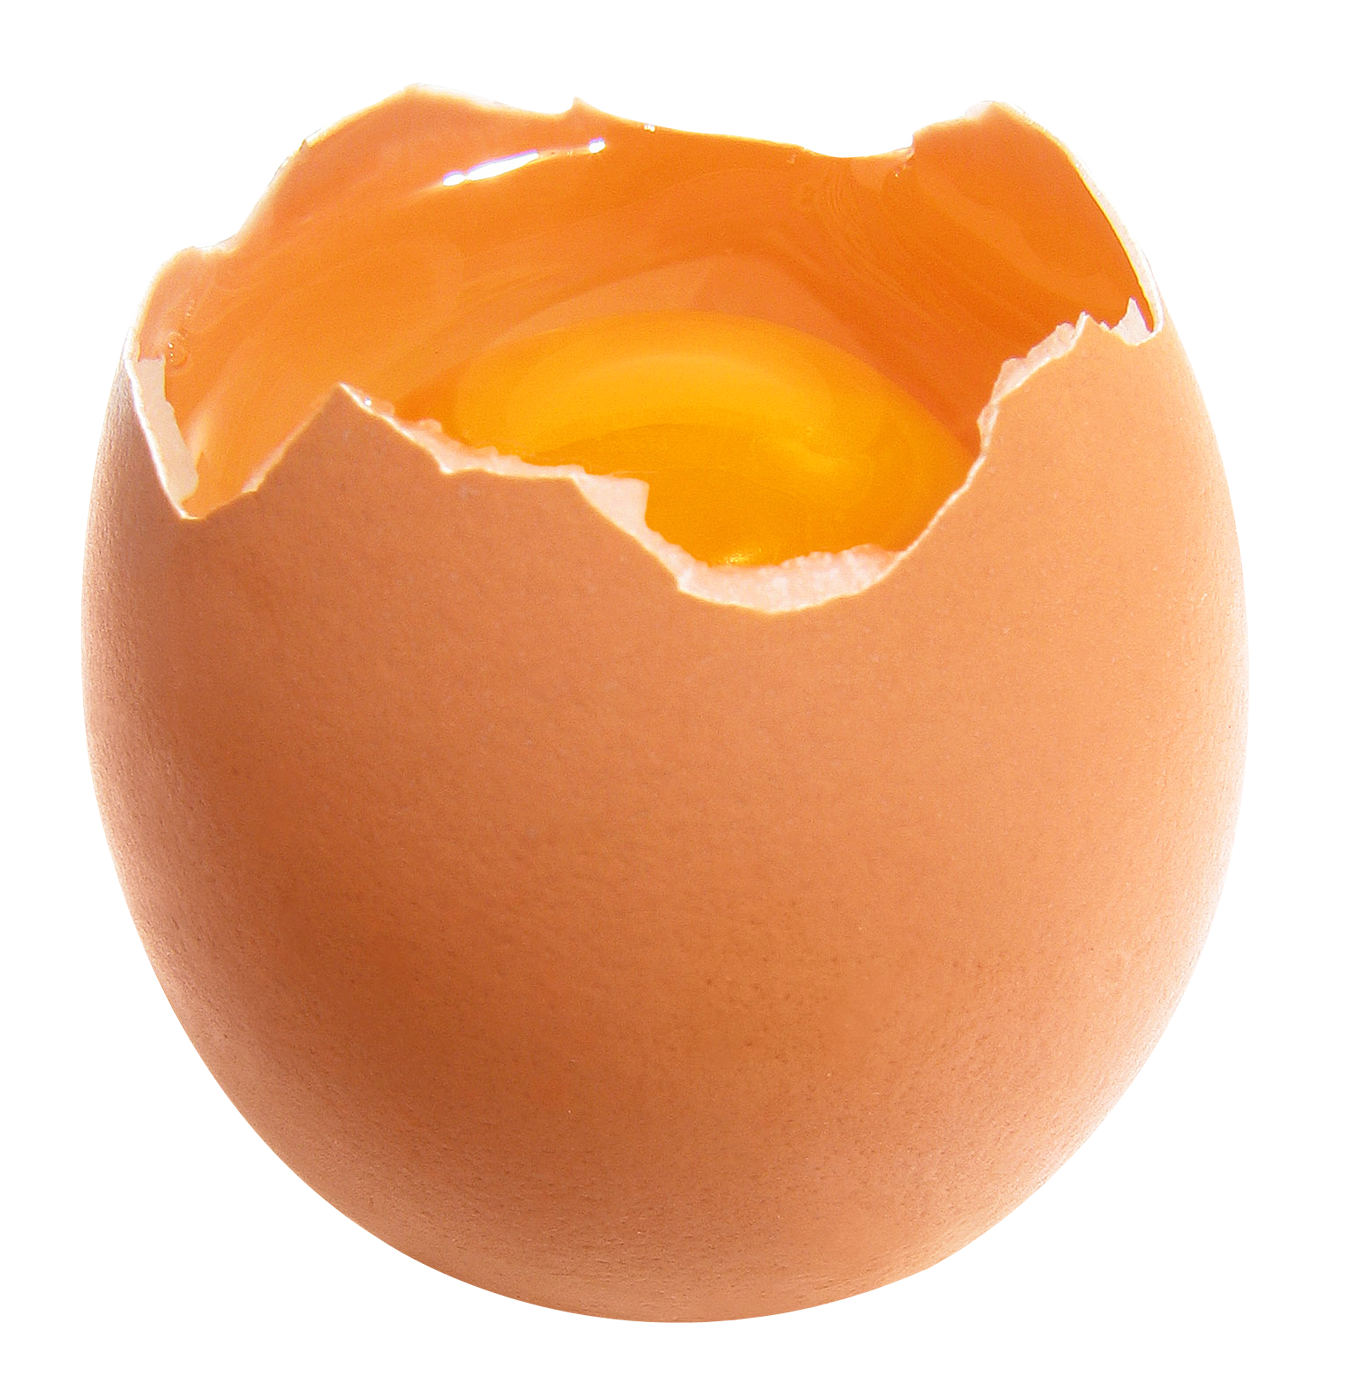 Broken Egg PNG Transparent Image - Broken Egg PNG HD